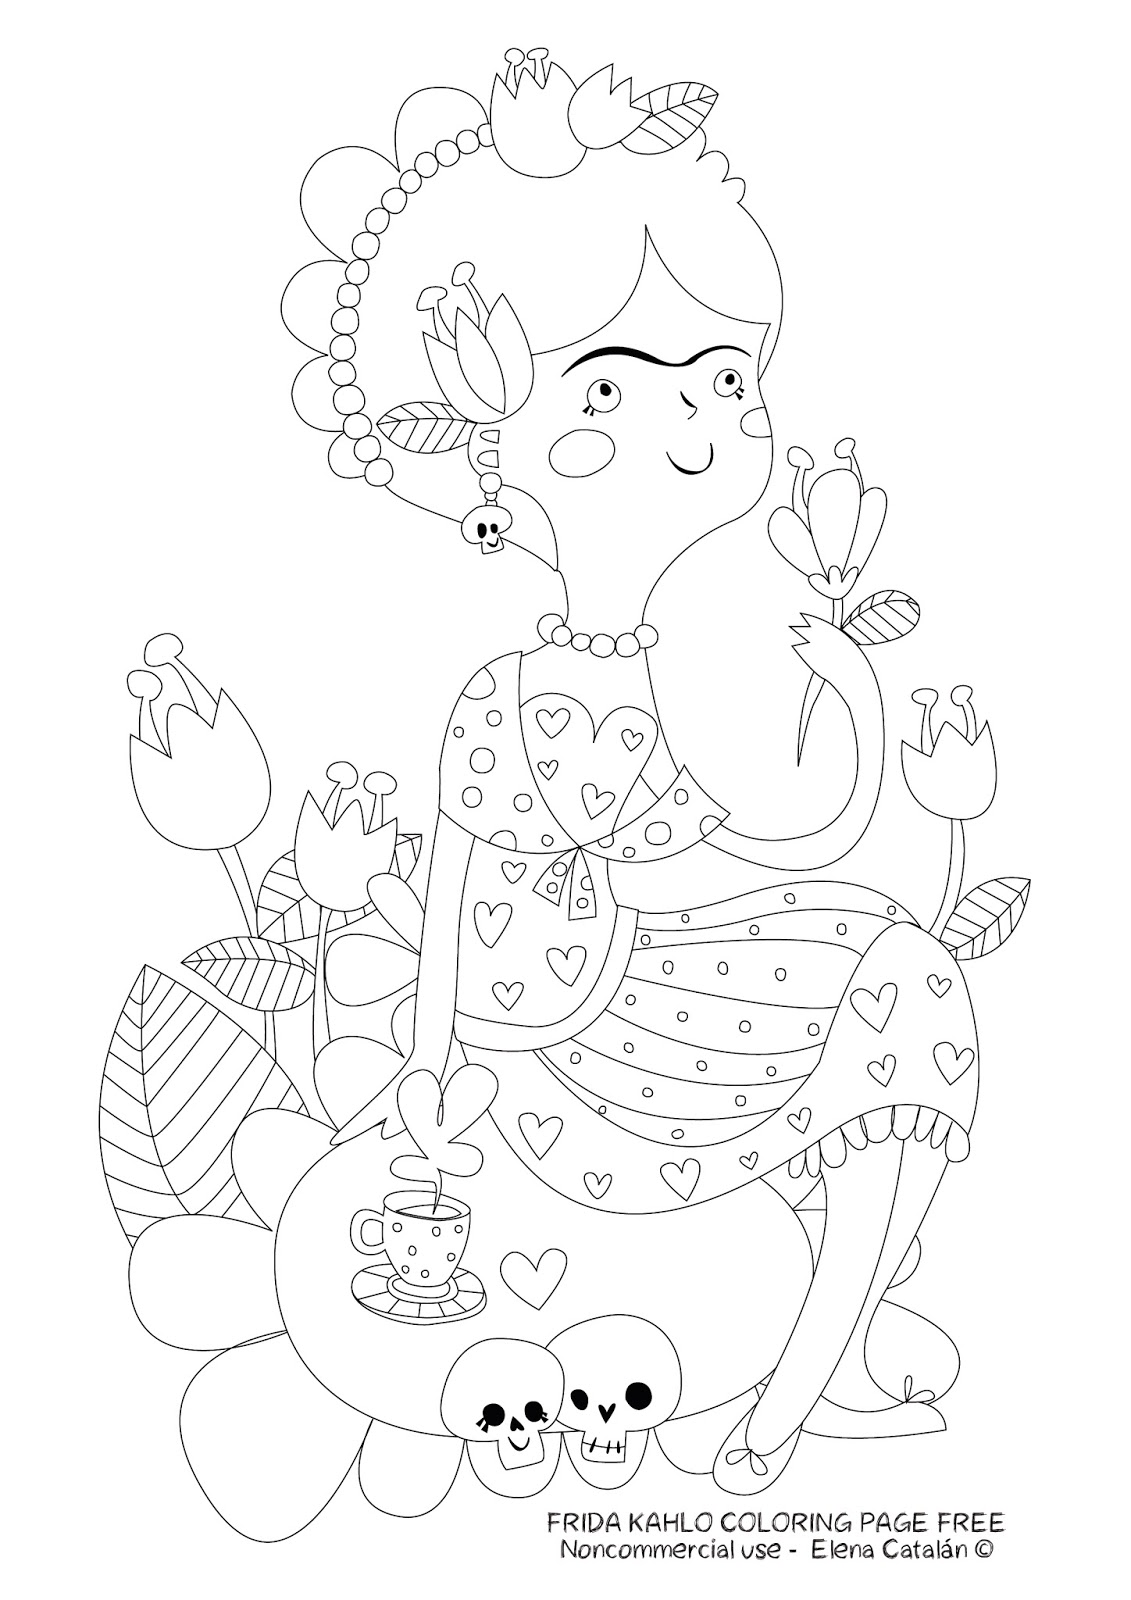 28 diego coloring pages pics photos dora diego coloring pages